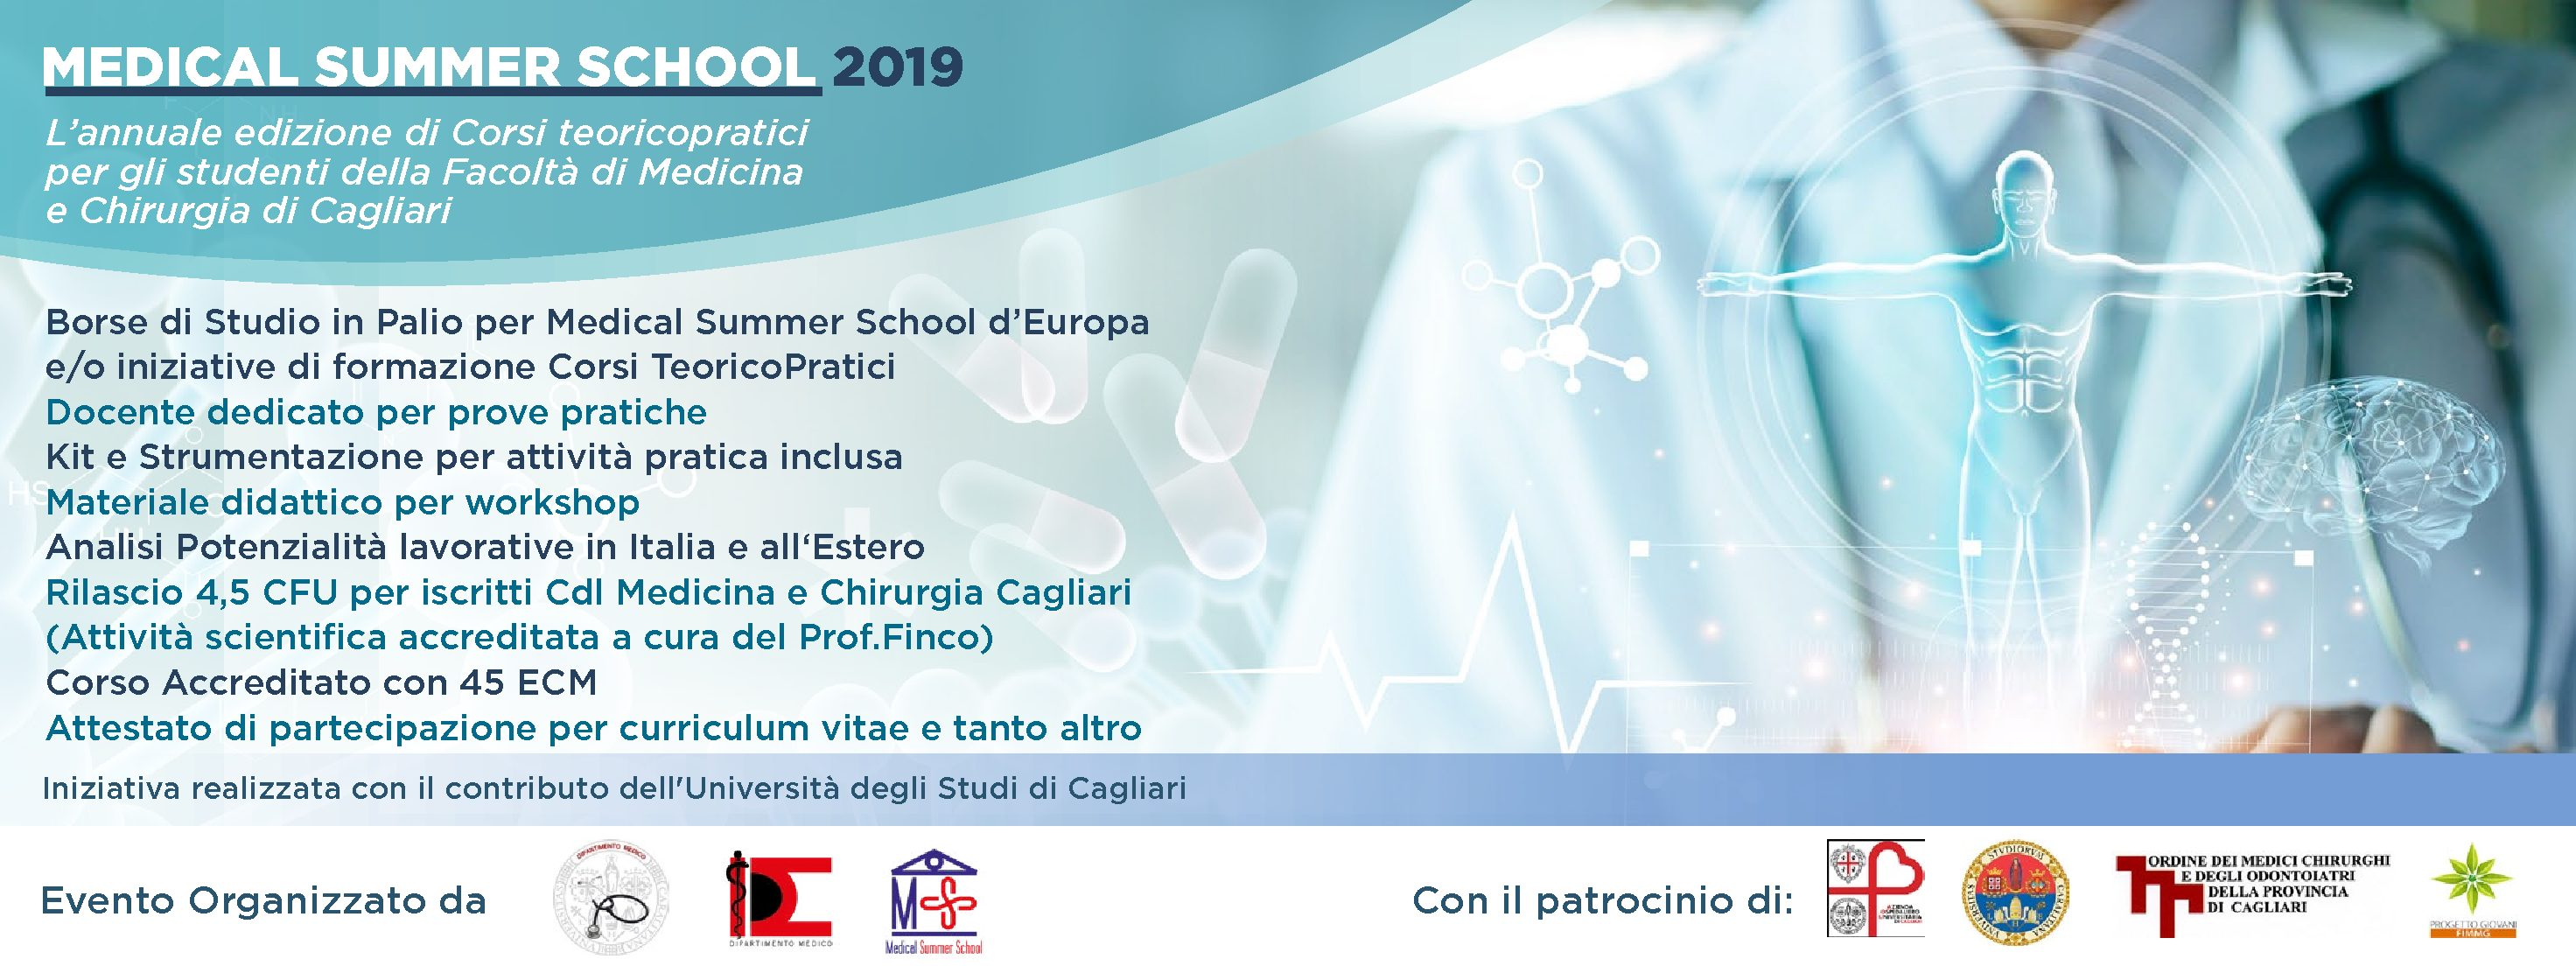 Medical Summer School 2019 – University of Cagliari